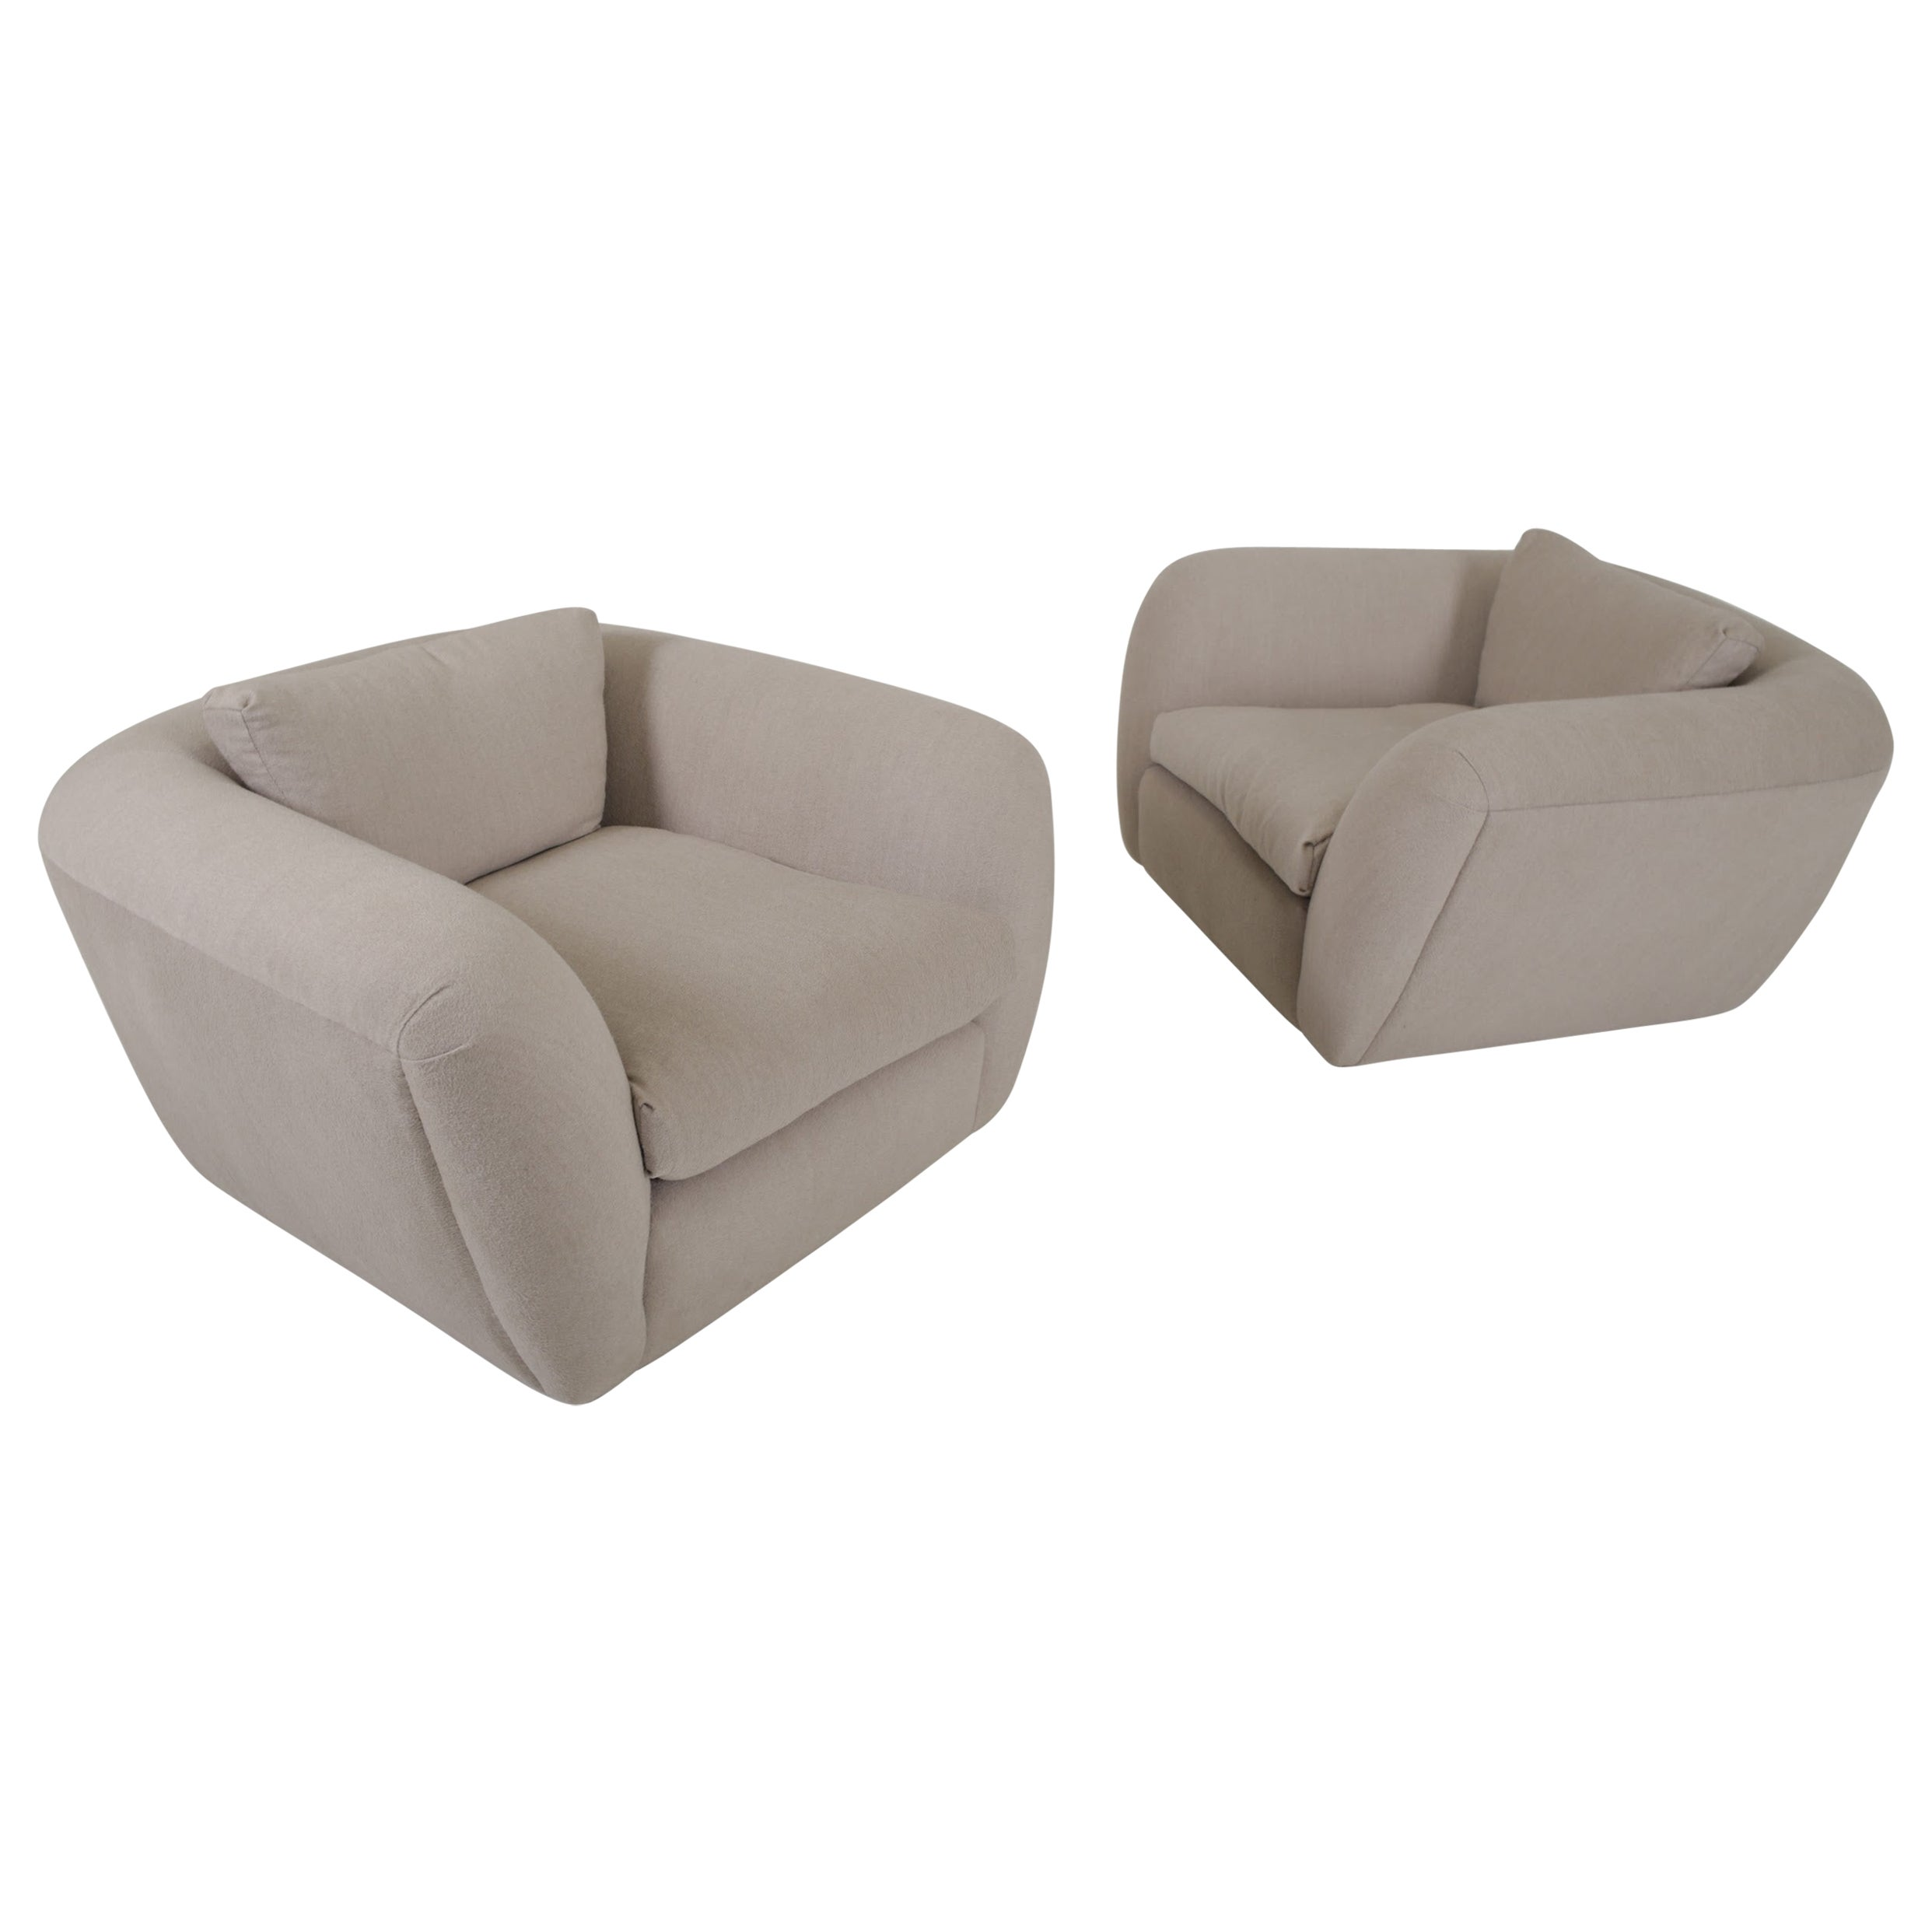 Jay Spectre Lounge Chairs in Cashmere